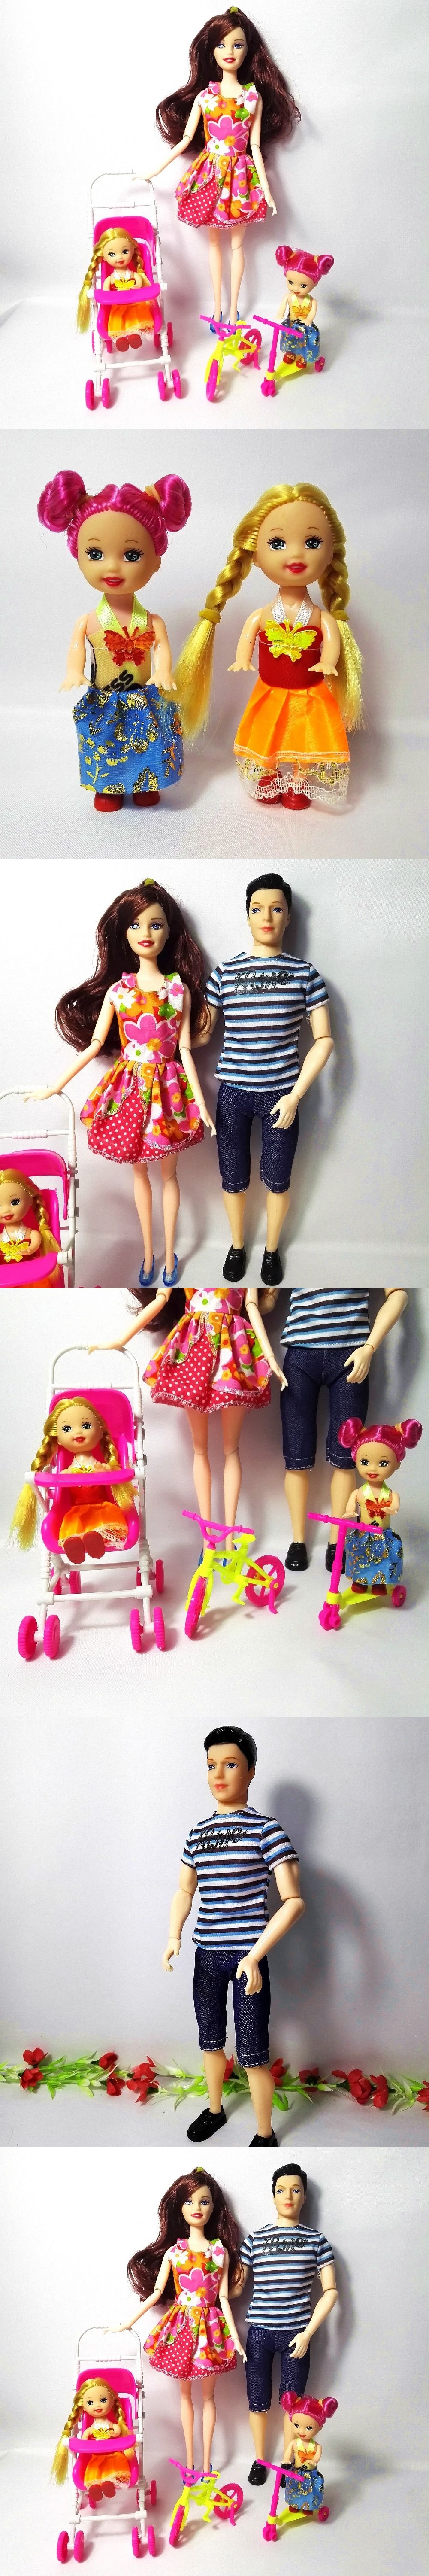 Car toys for girls  Fashion Doll Family  People Dolls Suits  MomDad Little Kelly